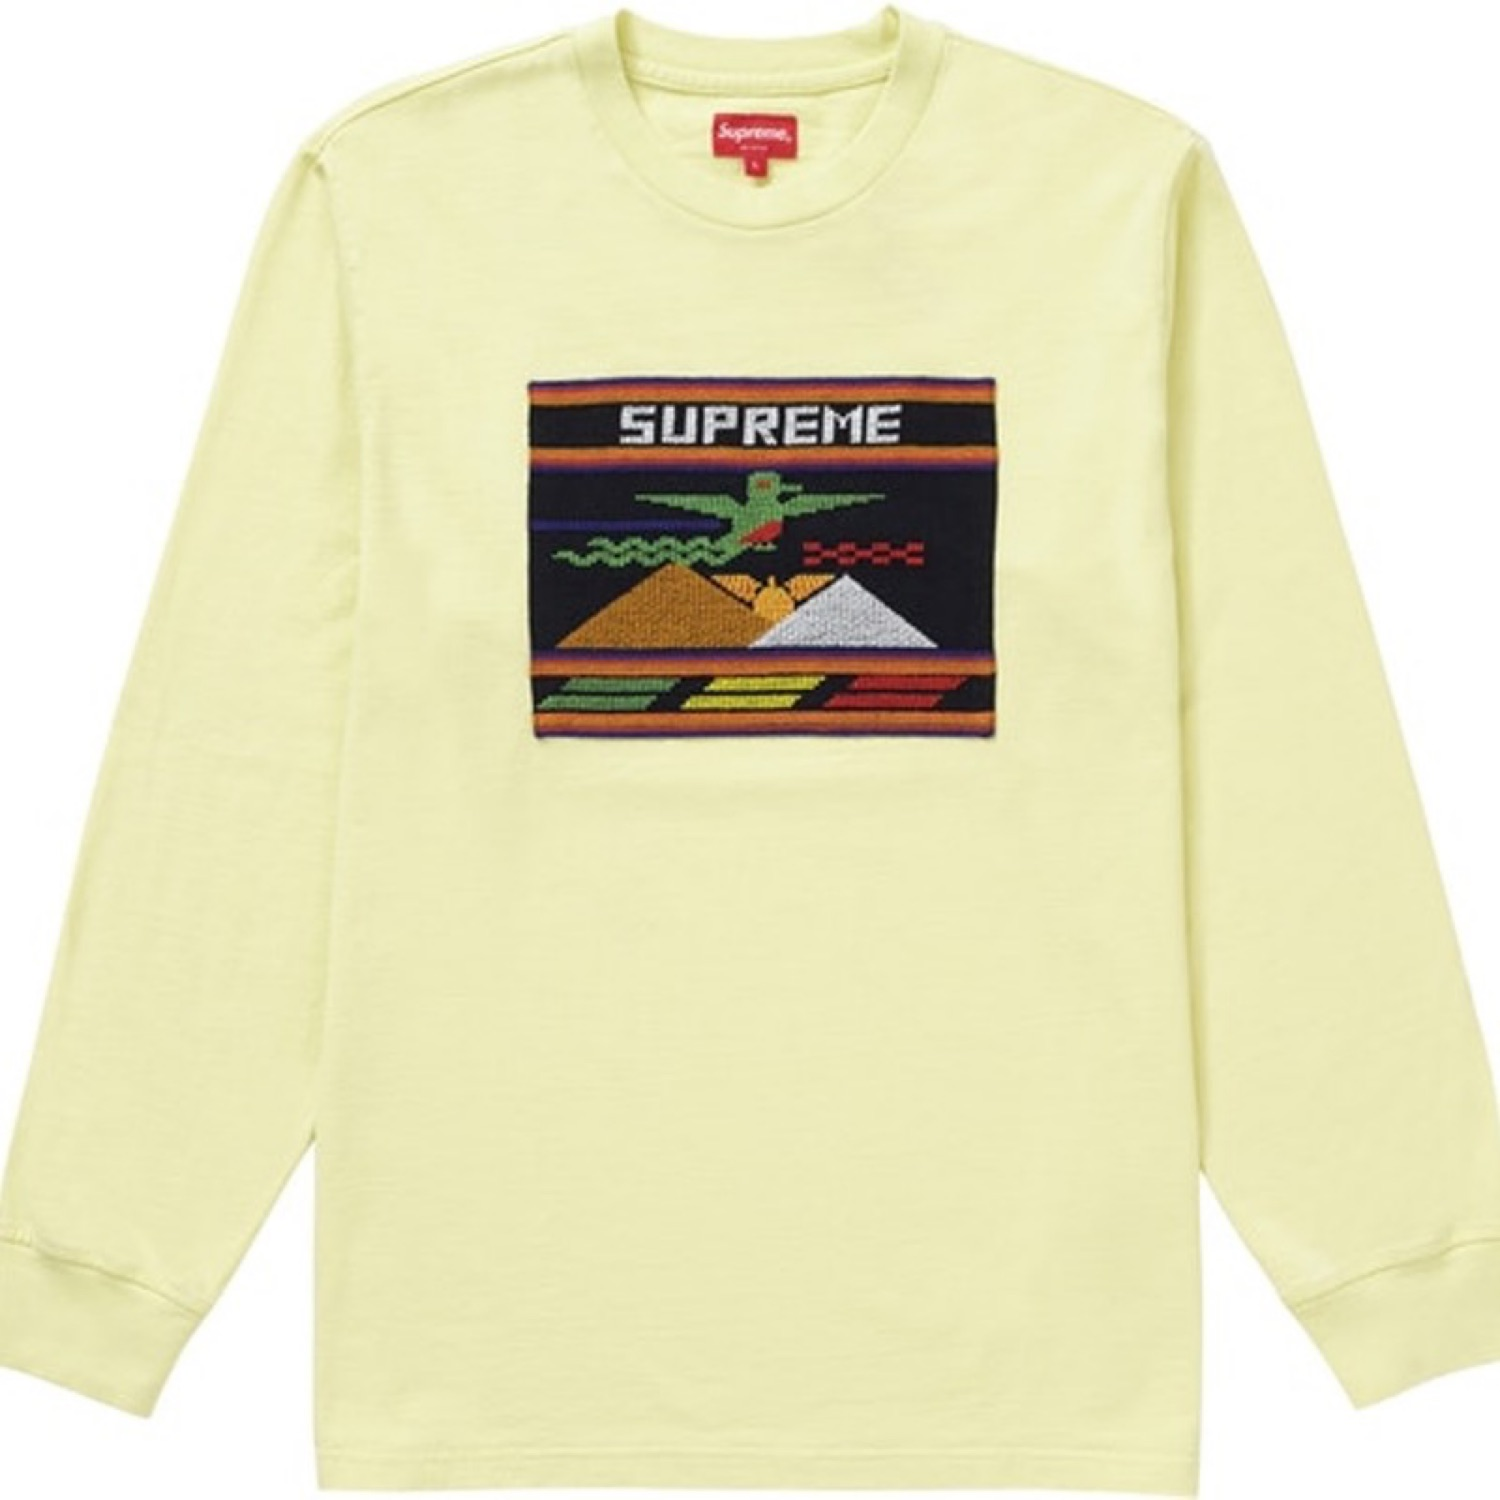 Supreme Needlepoint Patch Shirt